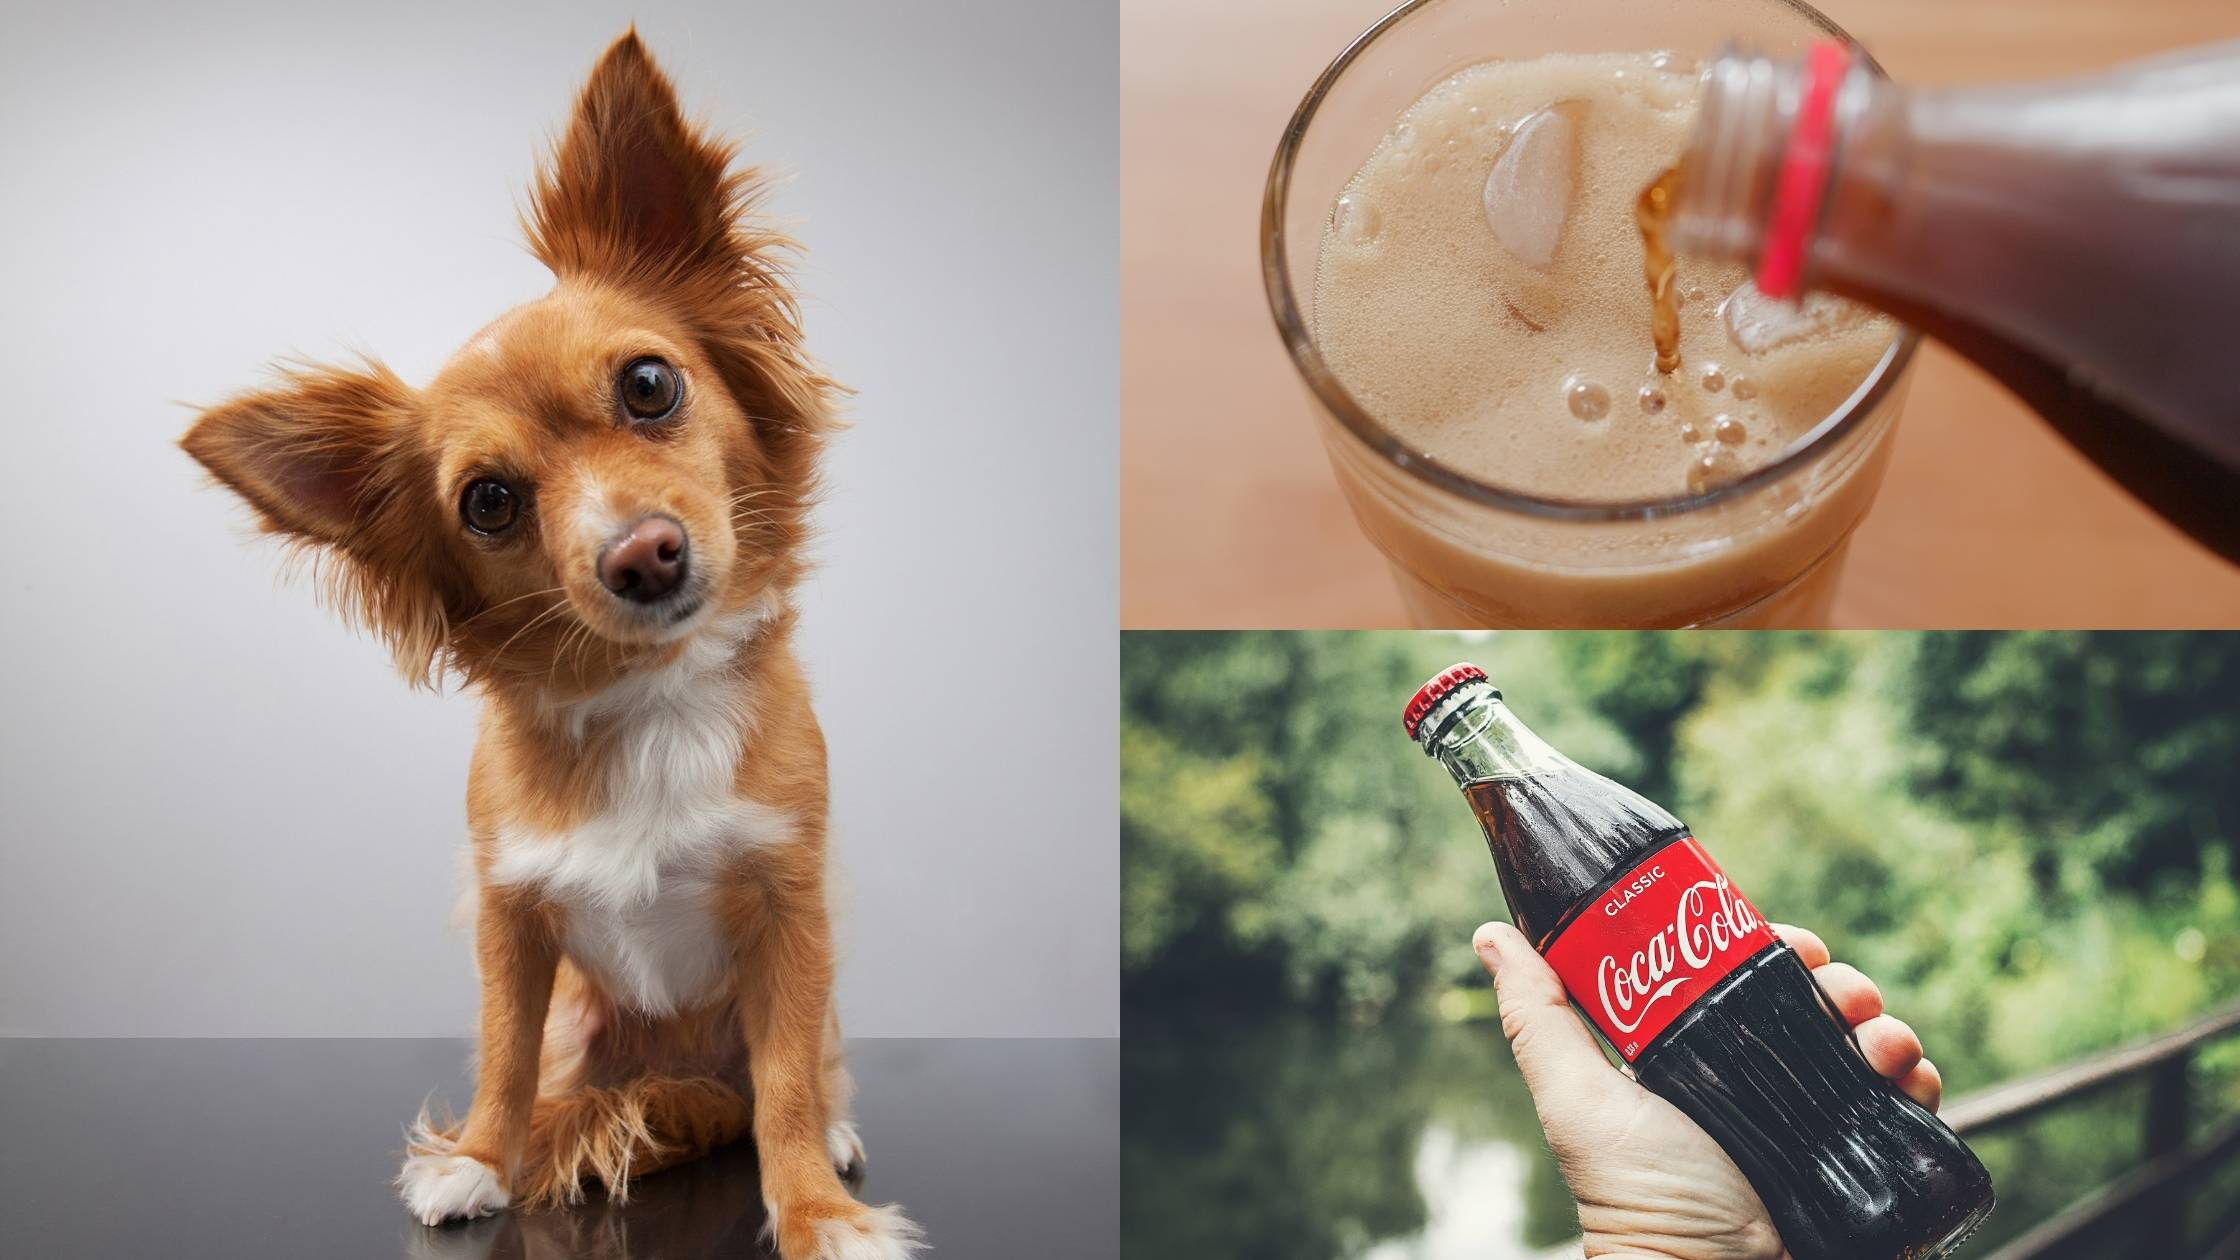 Can Dogs Drink Soda